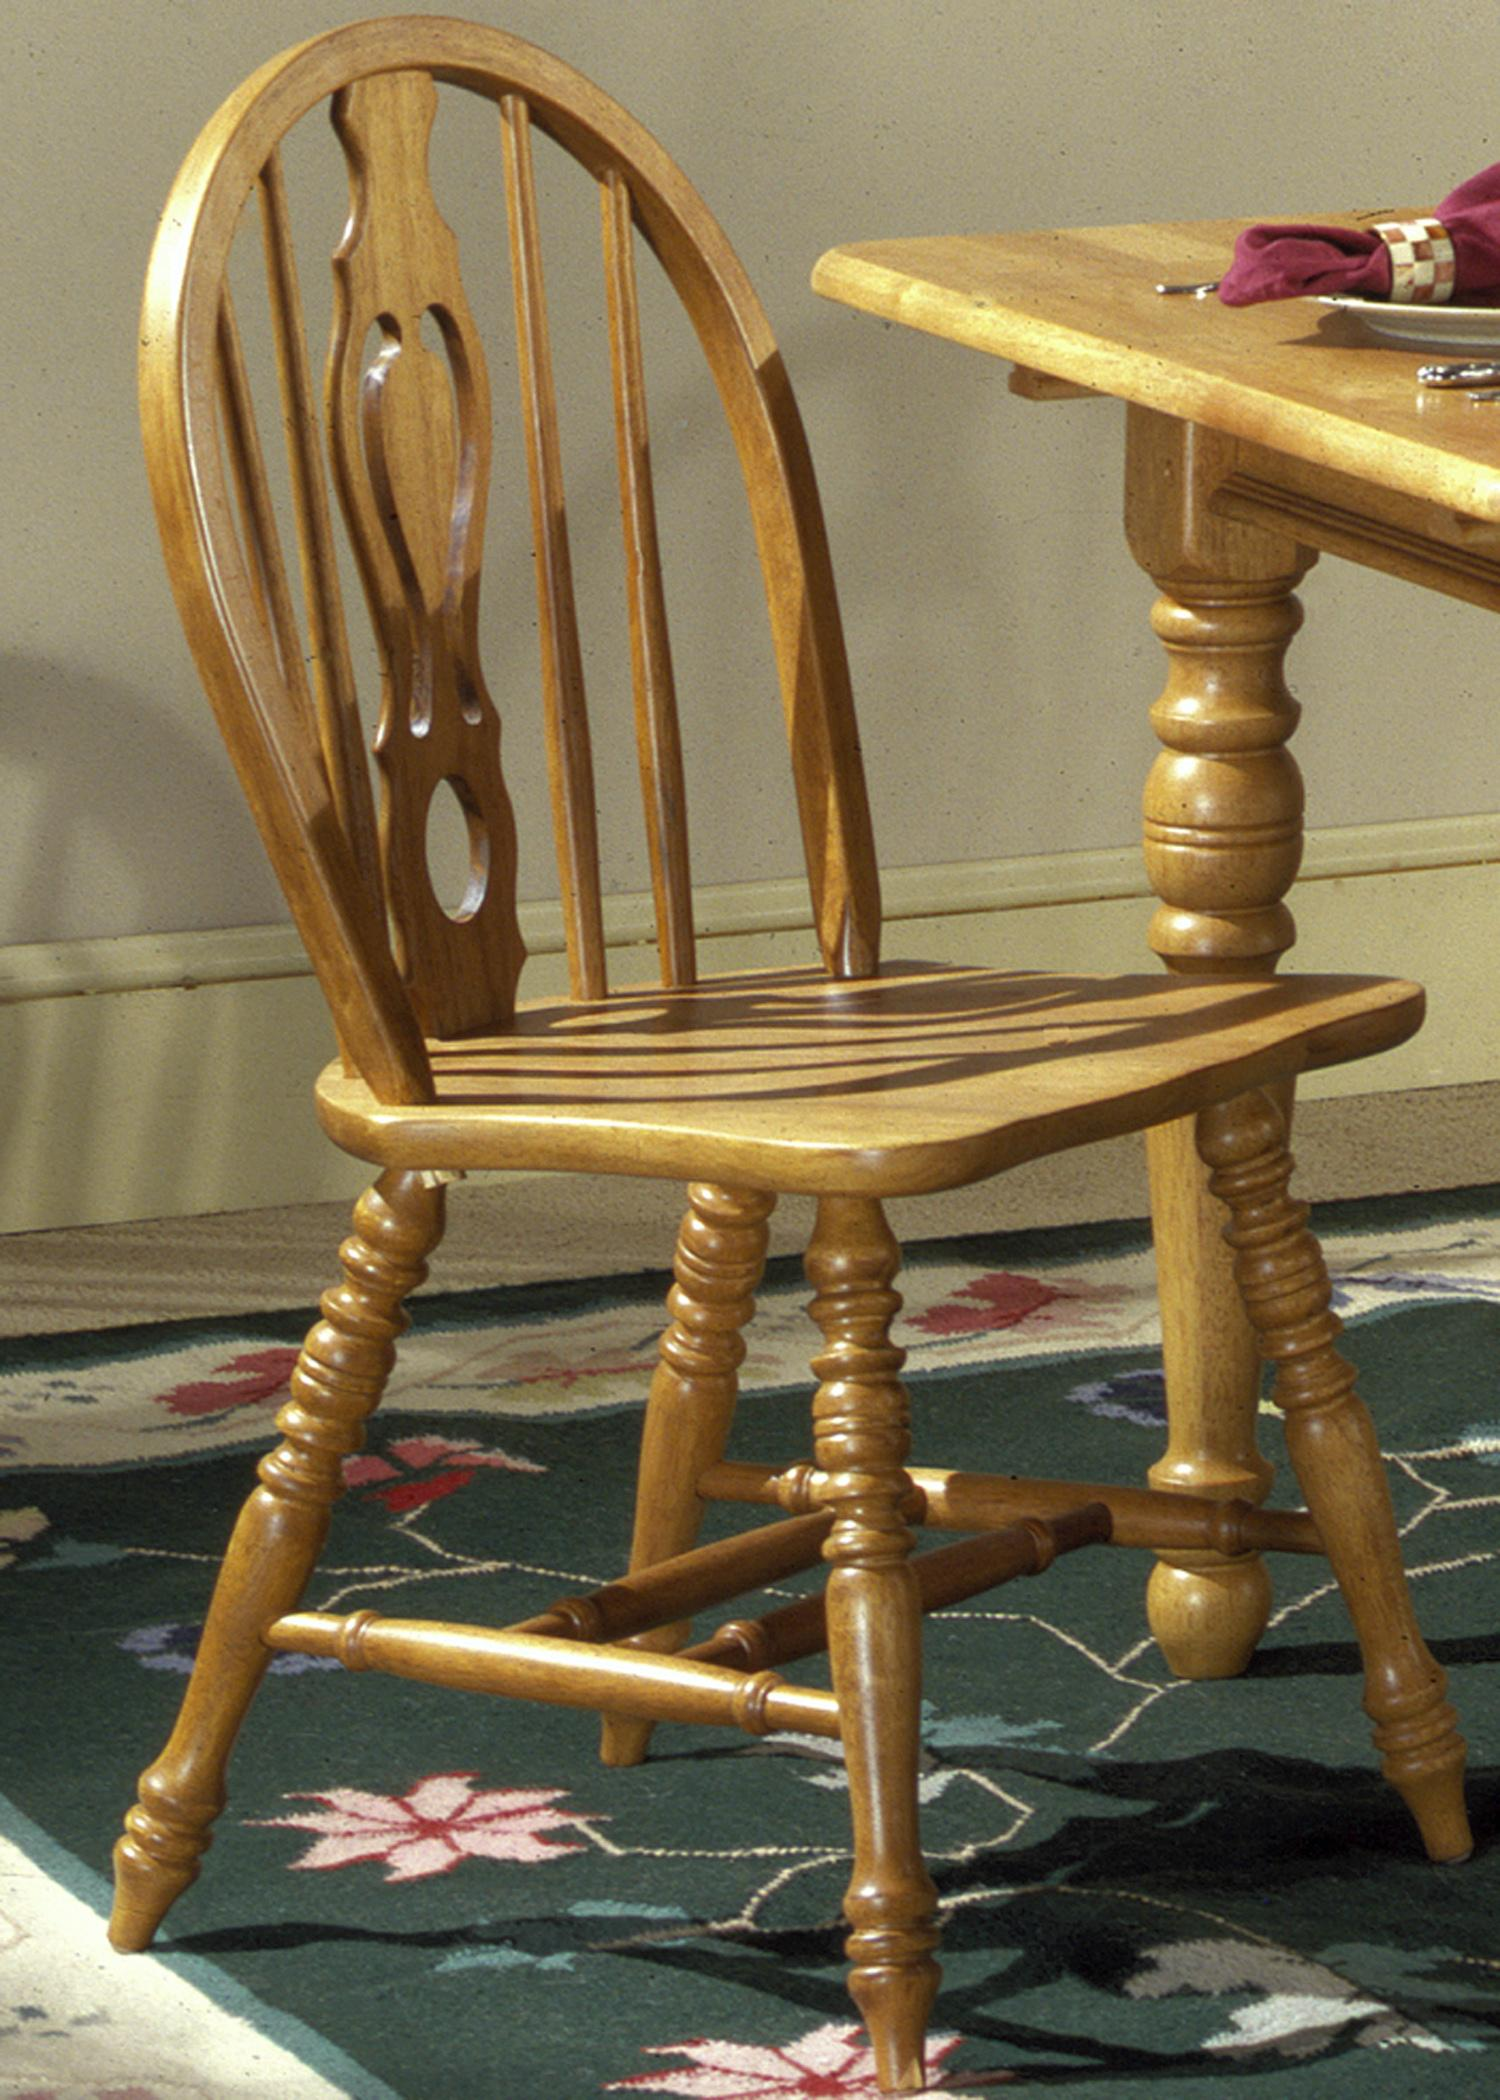 Liberty Furniture Country Haven Windsor Side Chair - Item Number: 85-C1465S